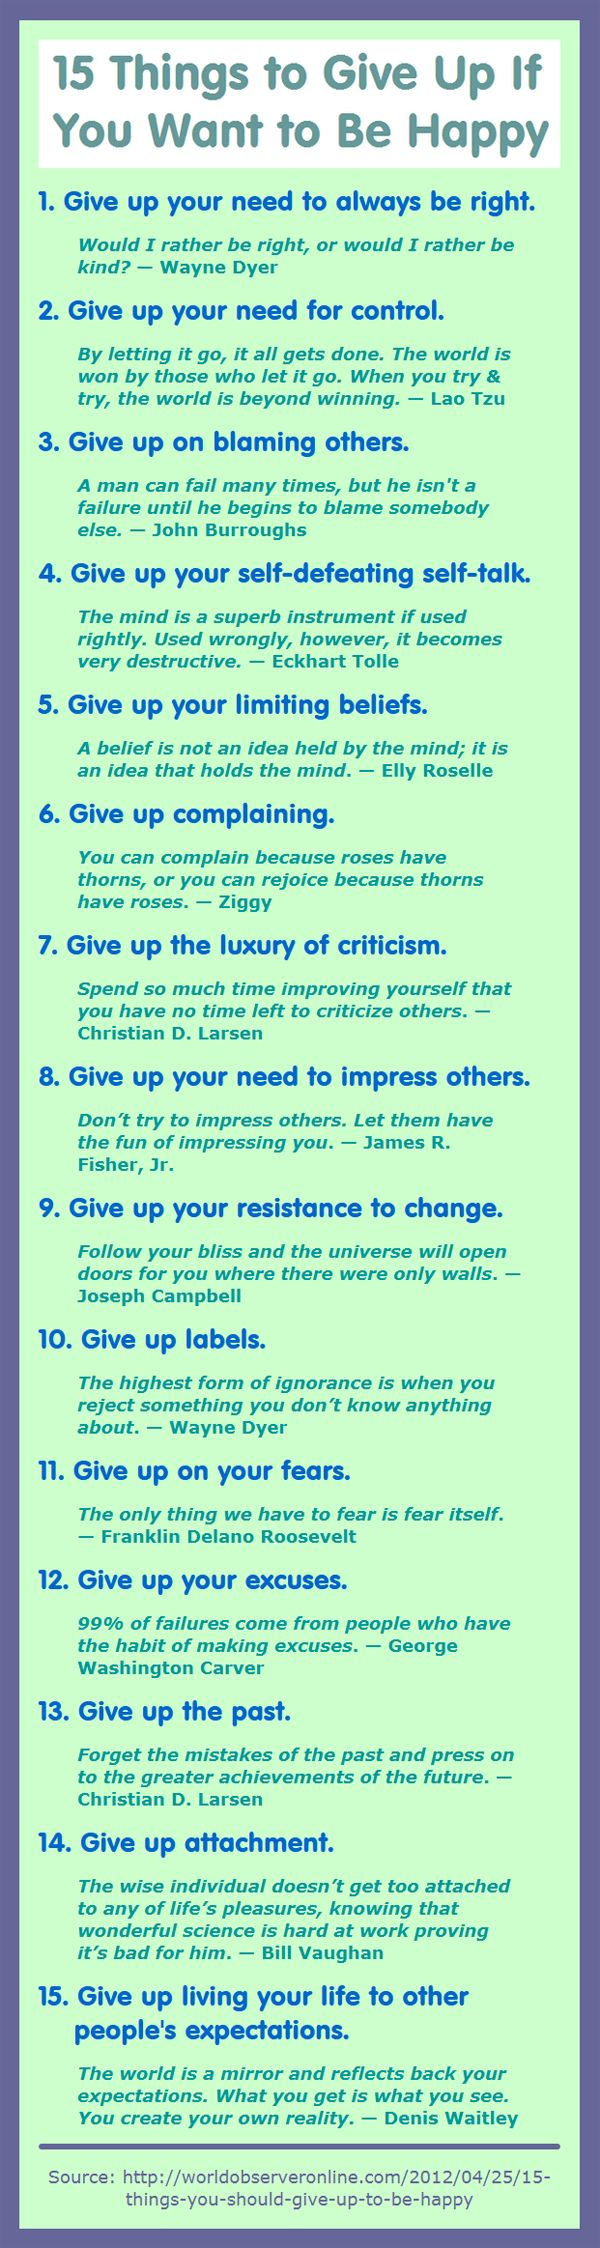 15 Things to Give Up If You Want to Be Happy . . .